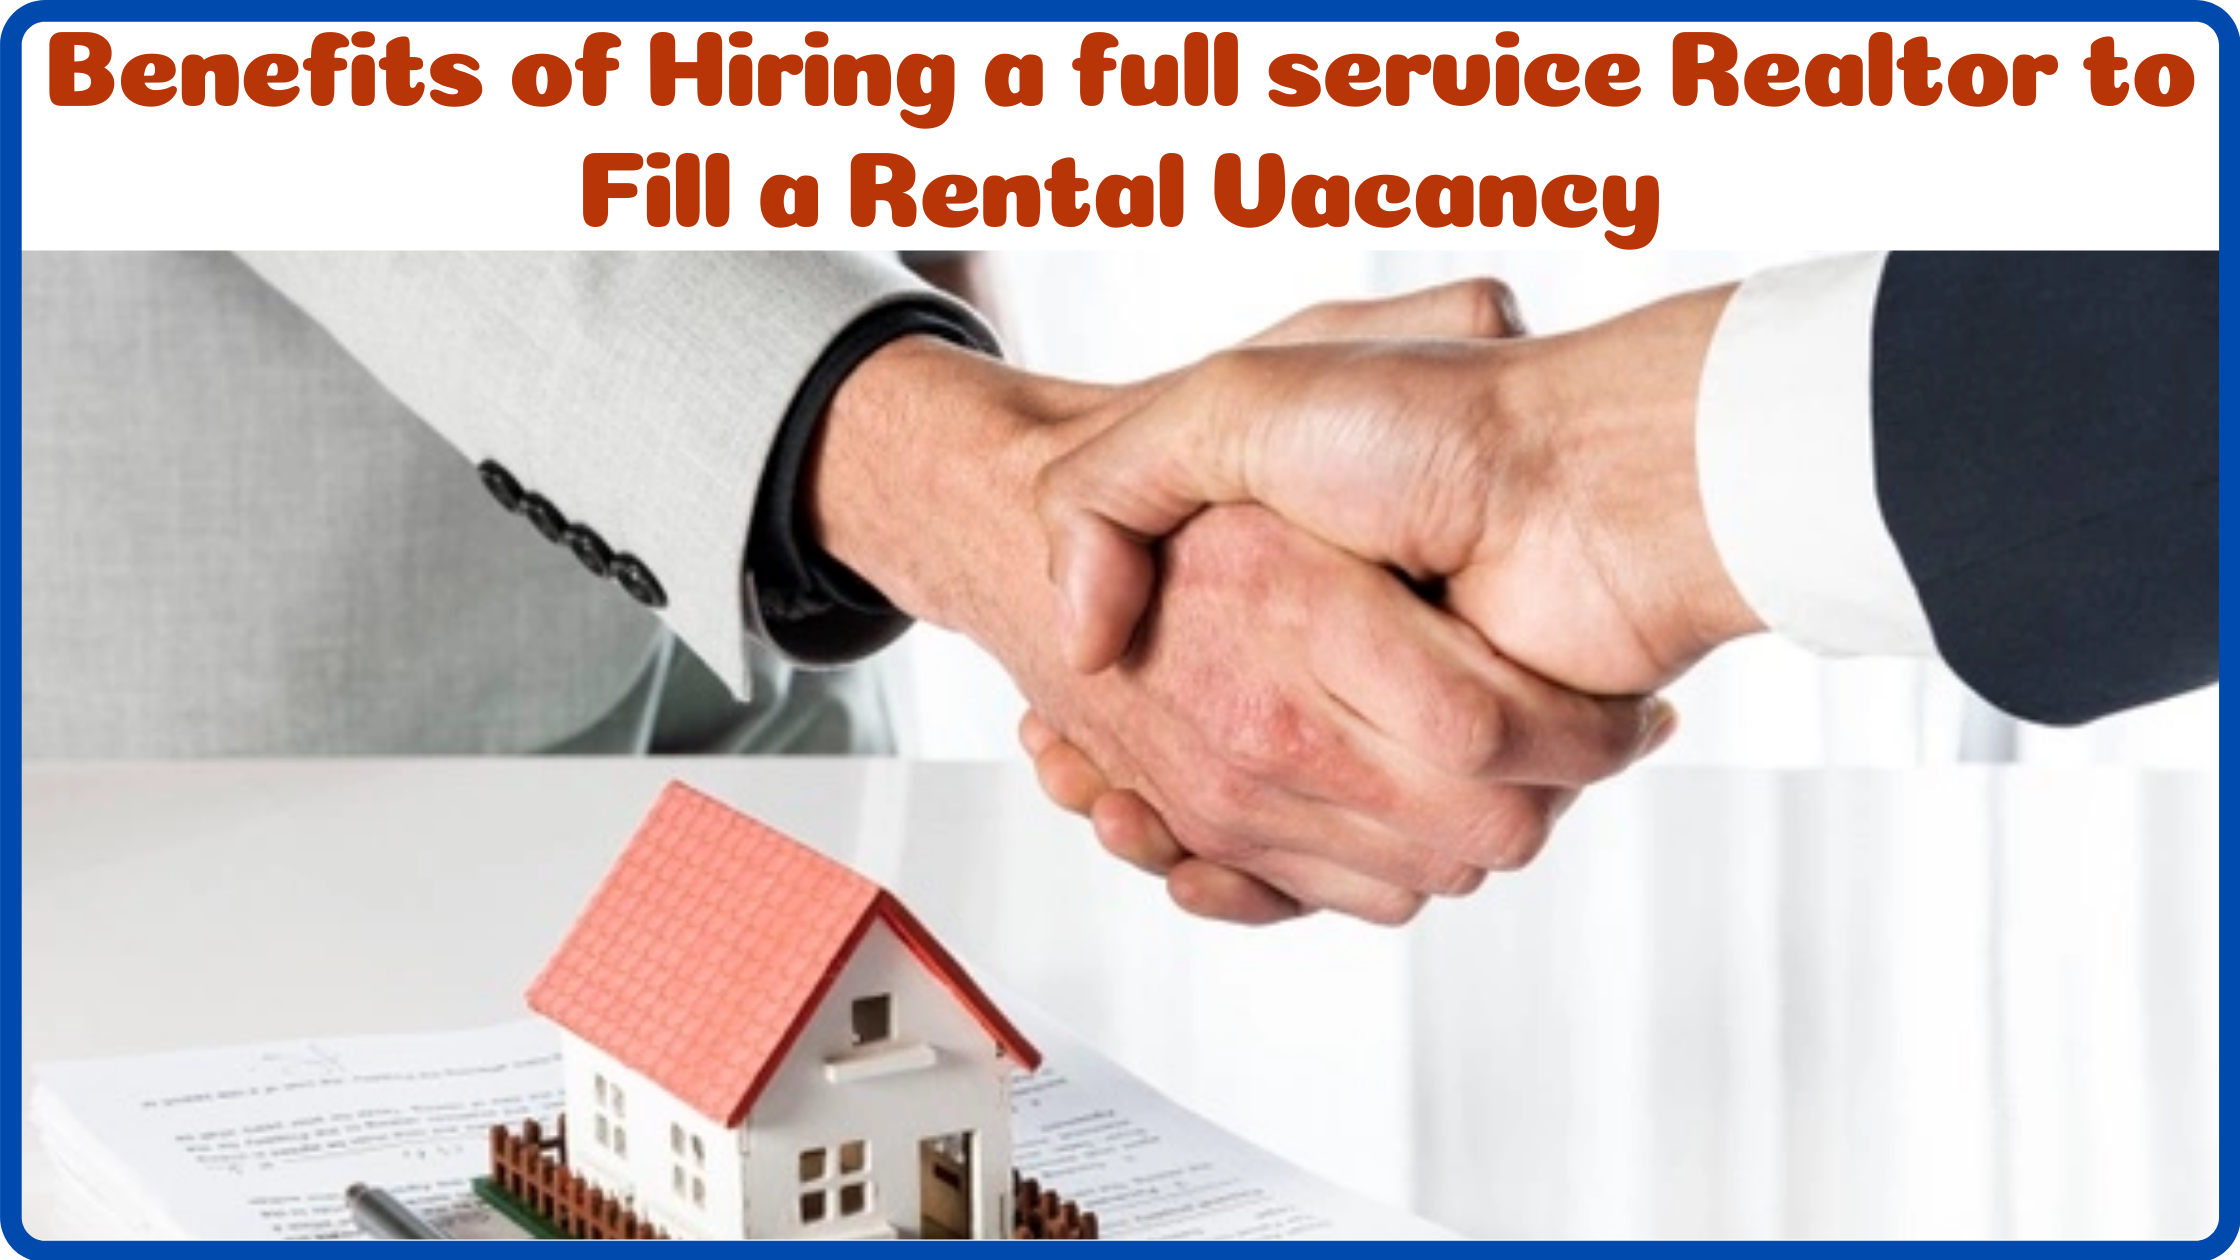 Benefits of Hiring a full service Realtor to Fill a Rental Vacancy - Commercial real estate austin, GW Partners